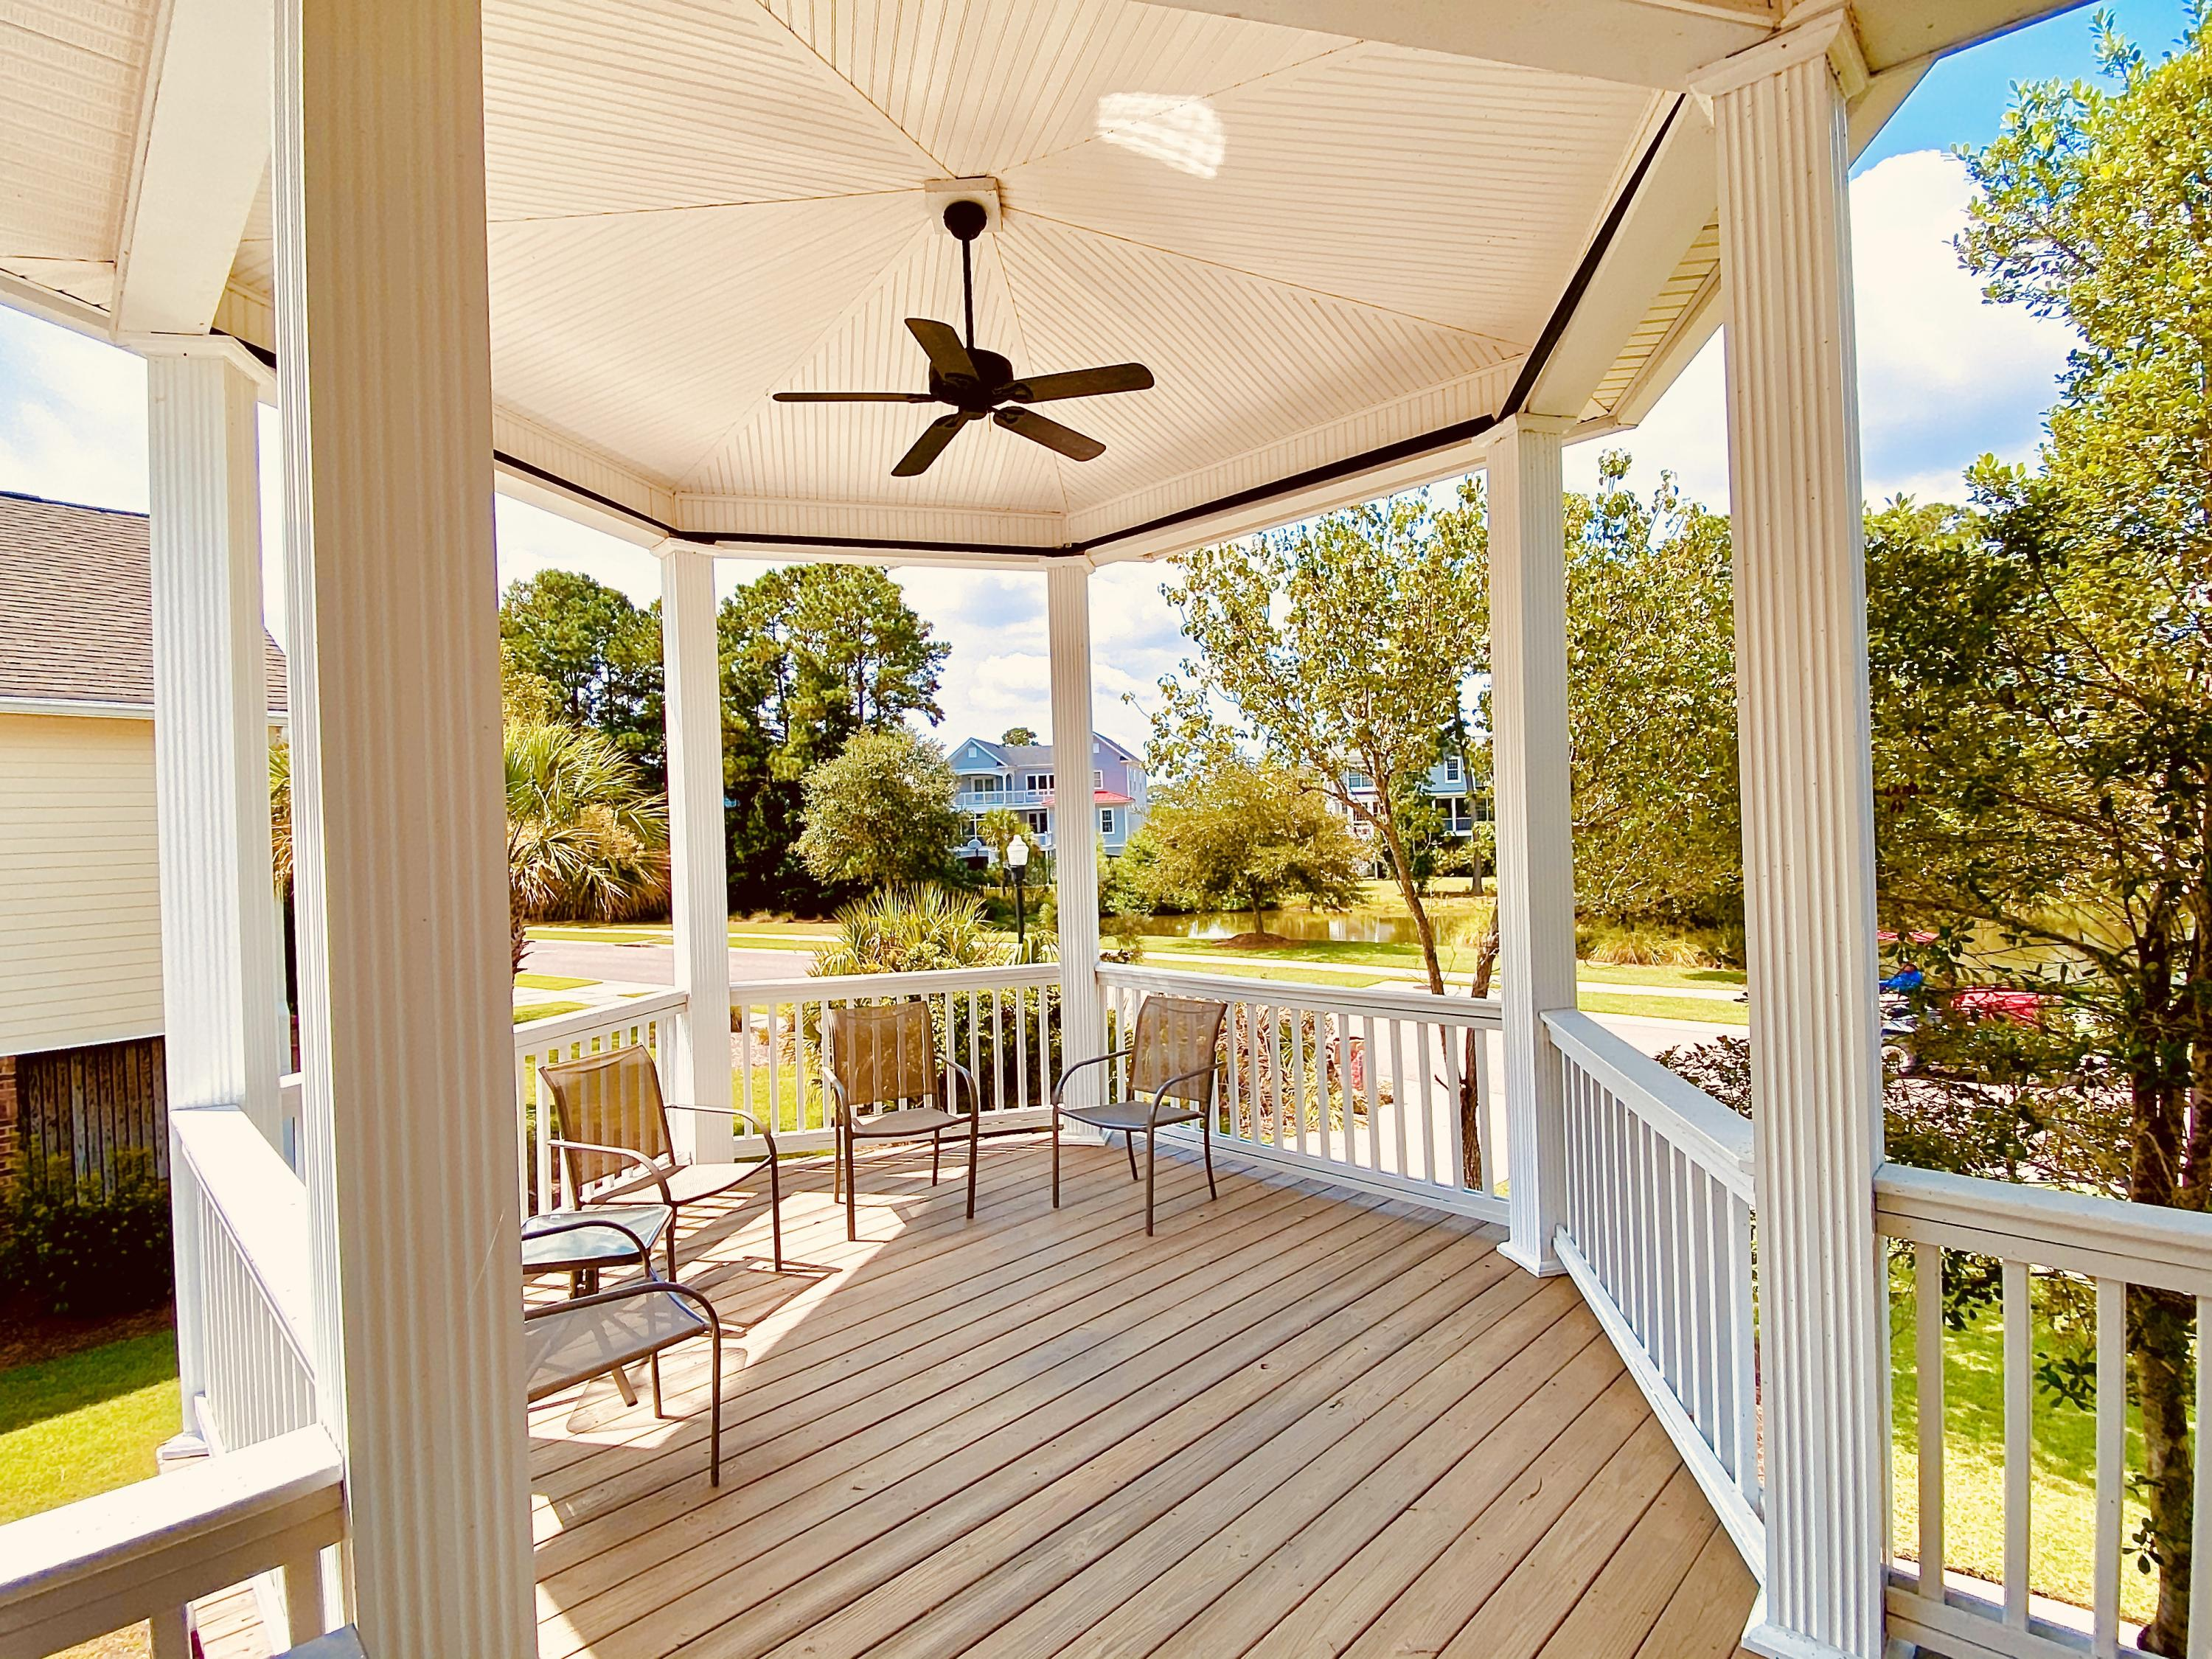 Rivertowne Country Club Homes For Sale - 1721 Rivertowne Country Club, Mount Pleasant, SC - 2